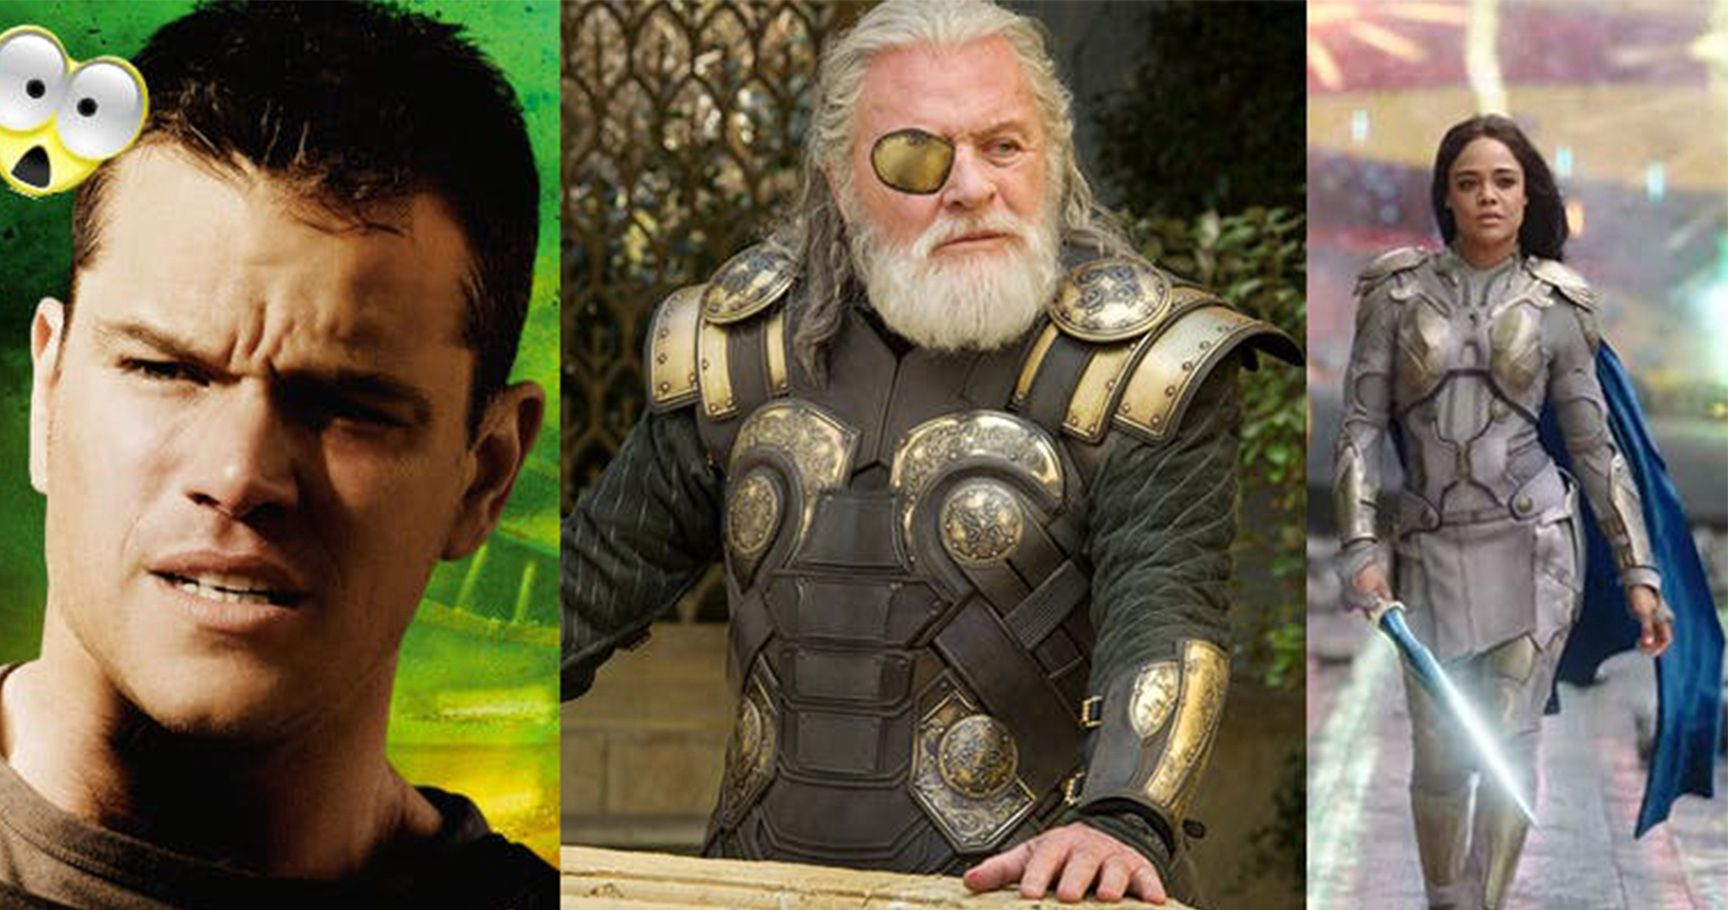 'Thor: Ragnarok': 10 Confirmed And 5 Unconfirmed Rumors About The Film